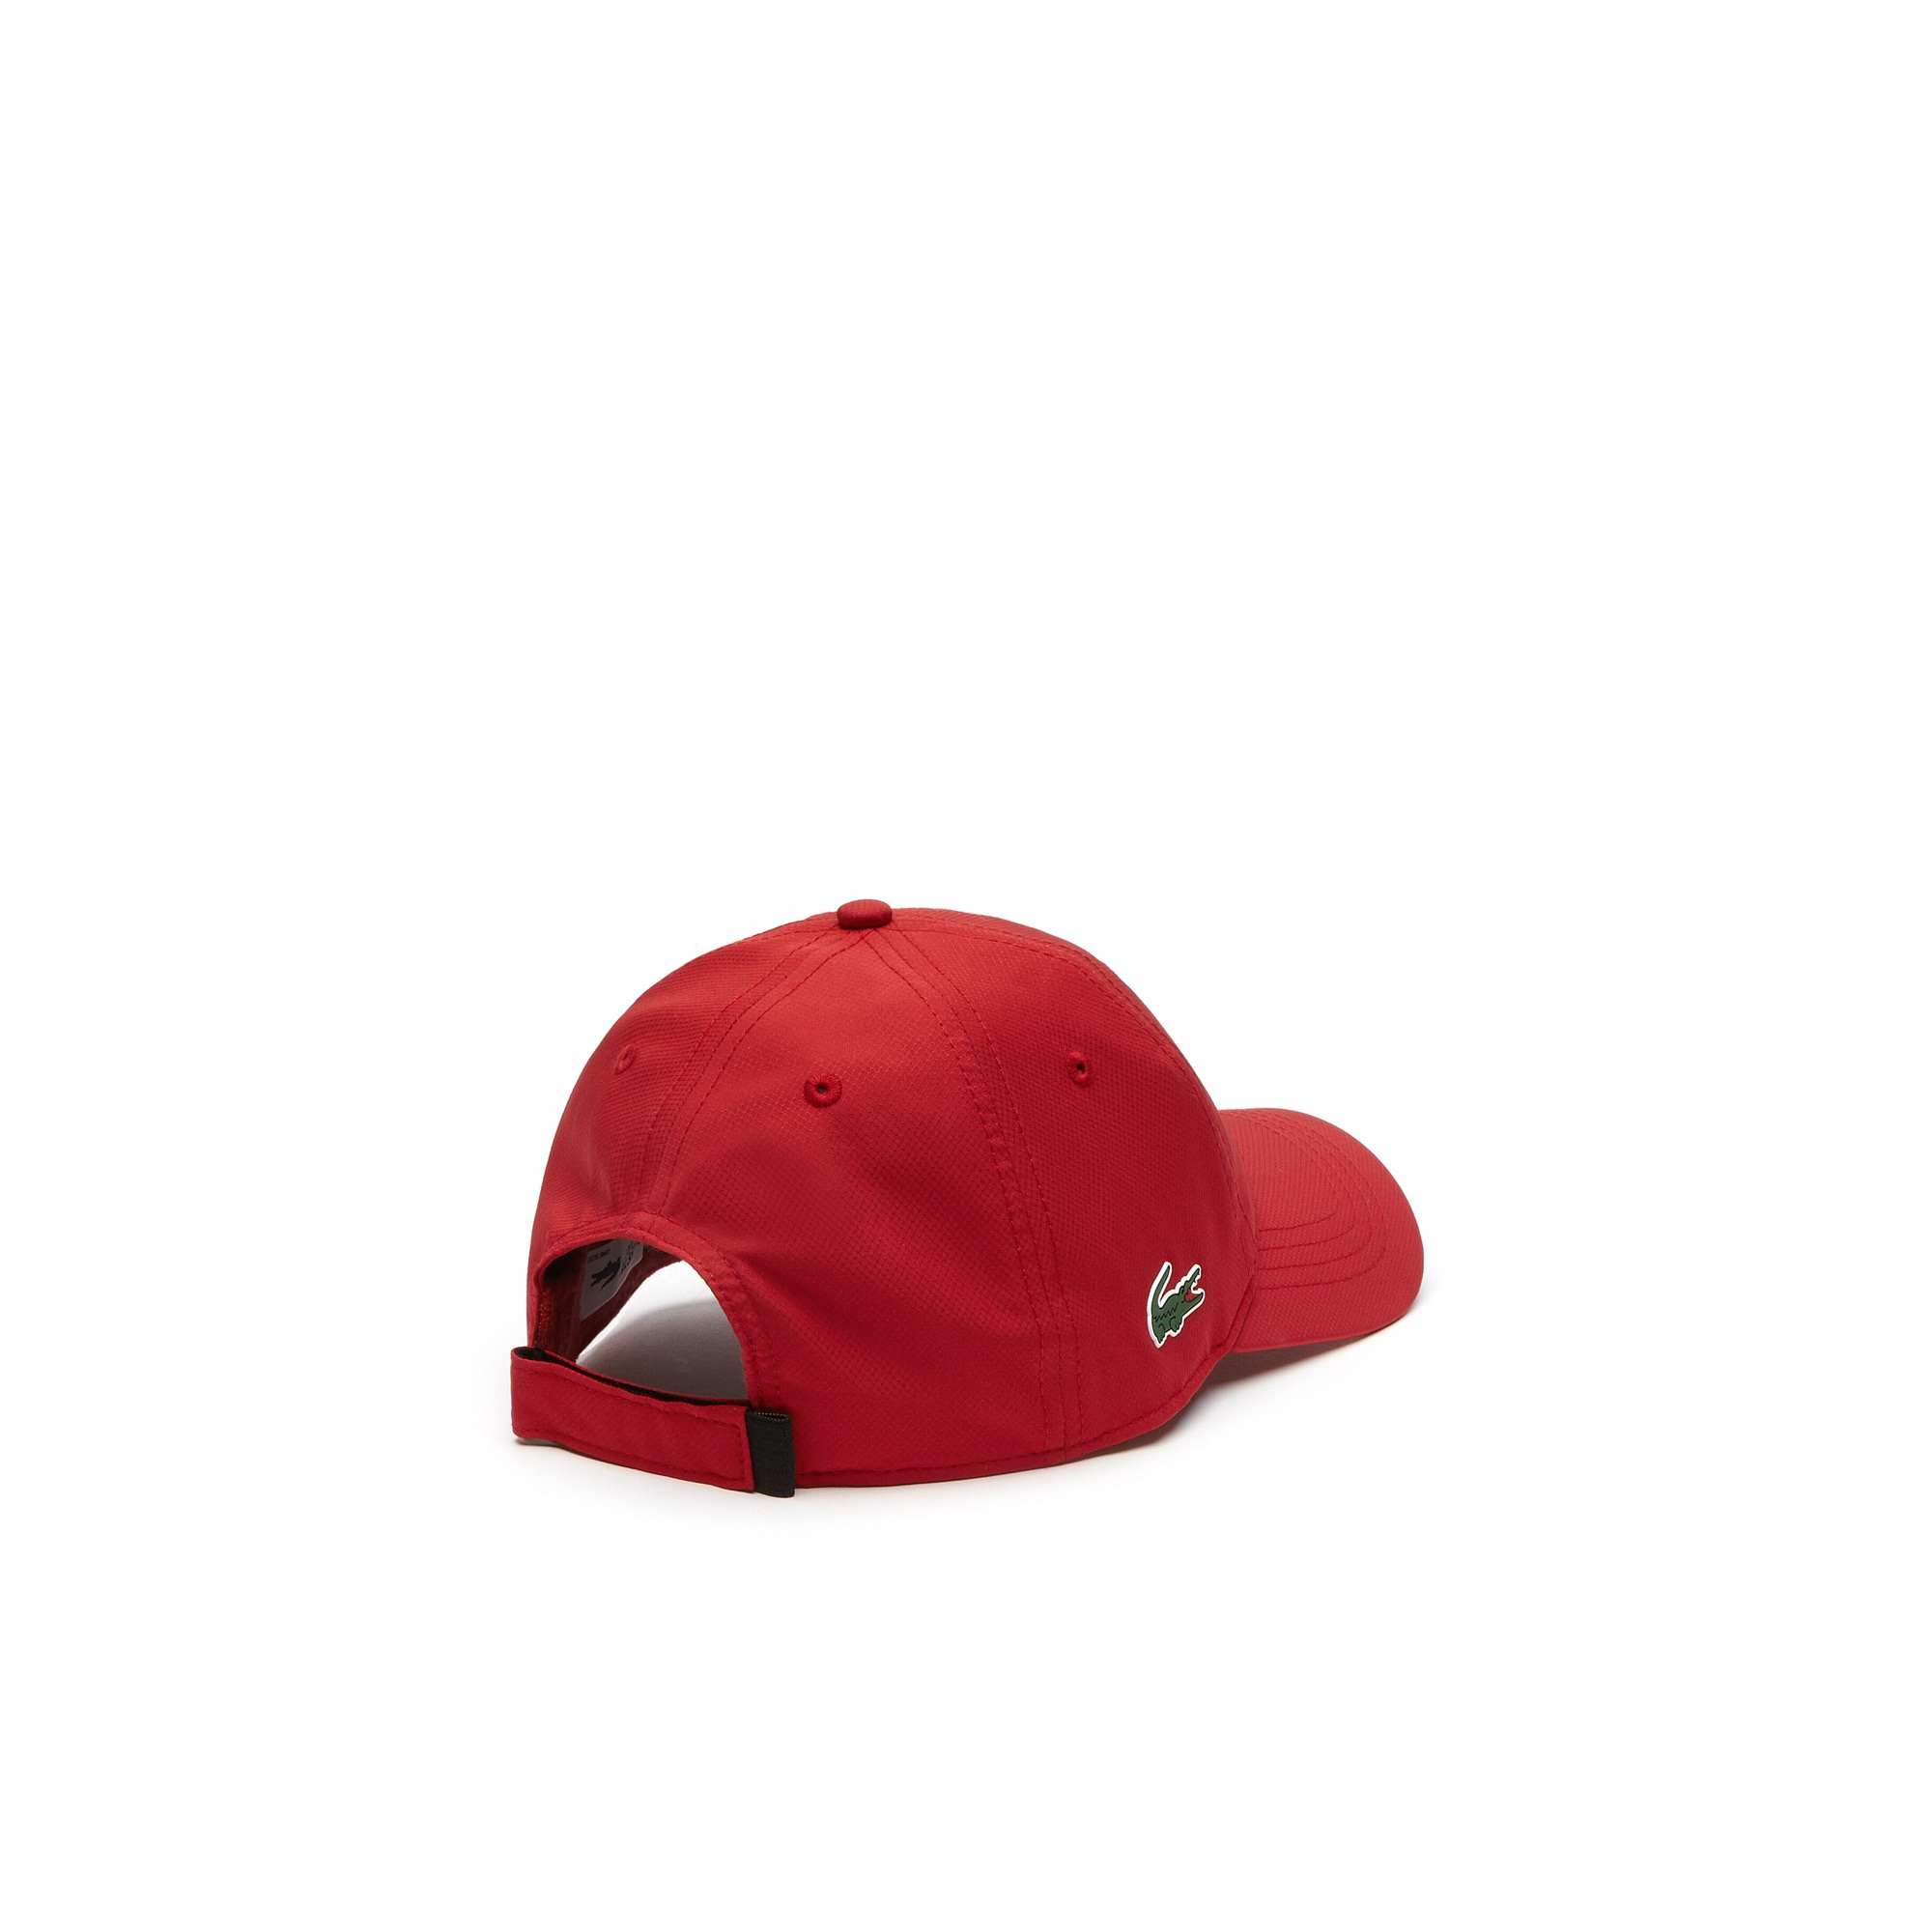 Shop Lacoste Men S Sport Taffeta Cap In Lighthouse Red cdba6f750caf